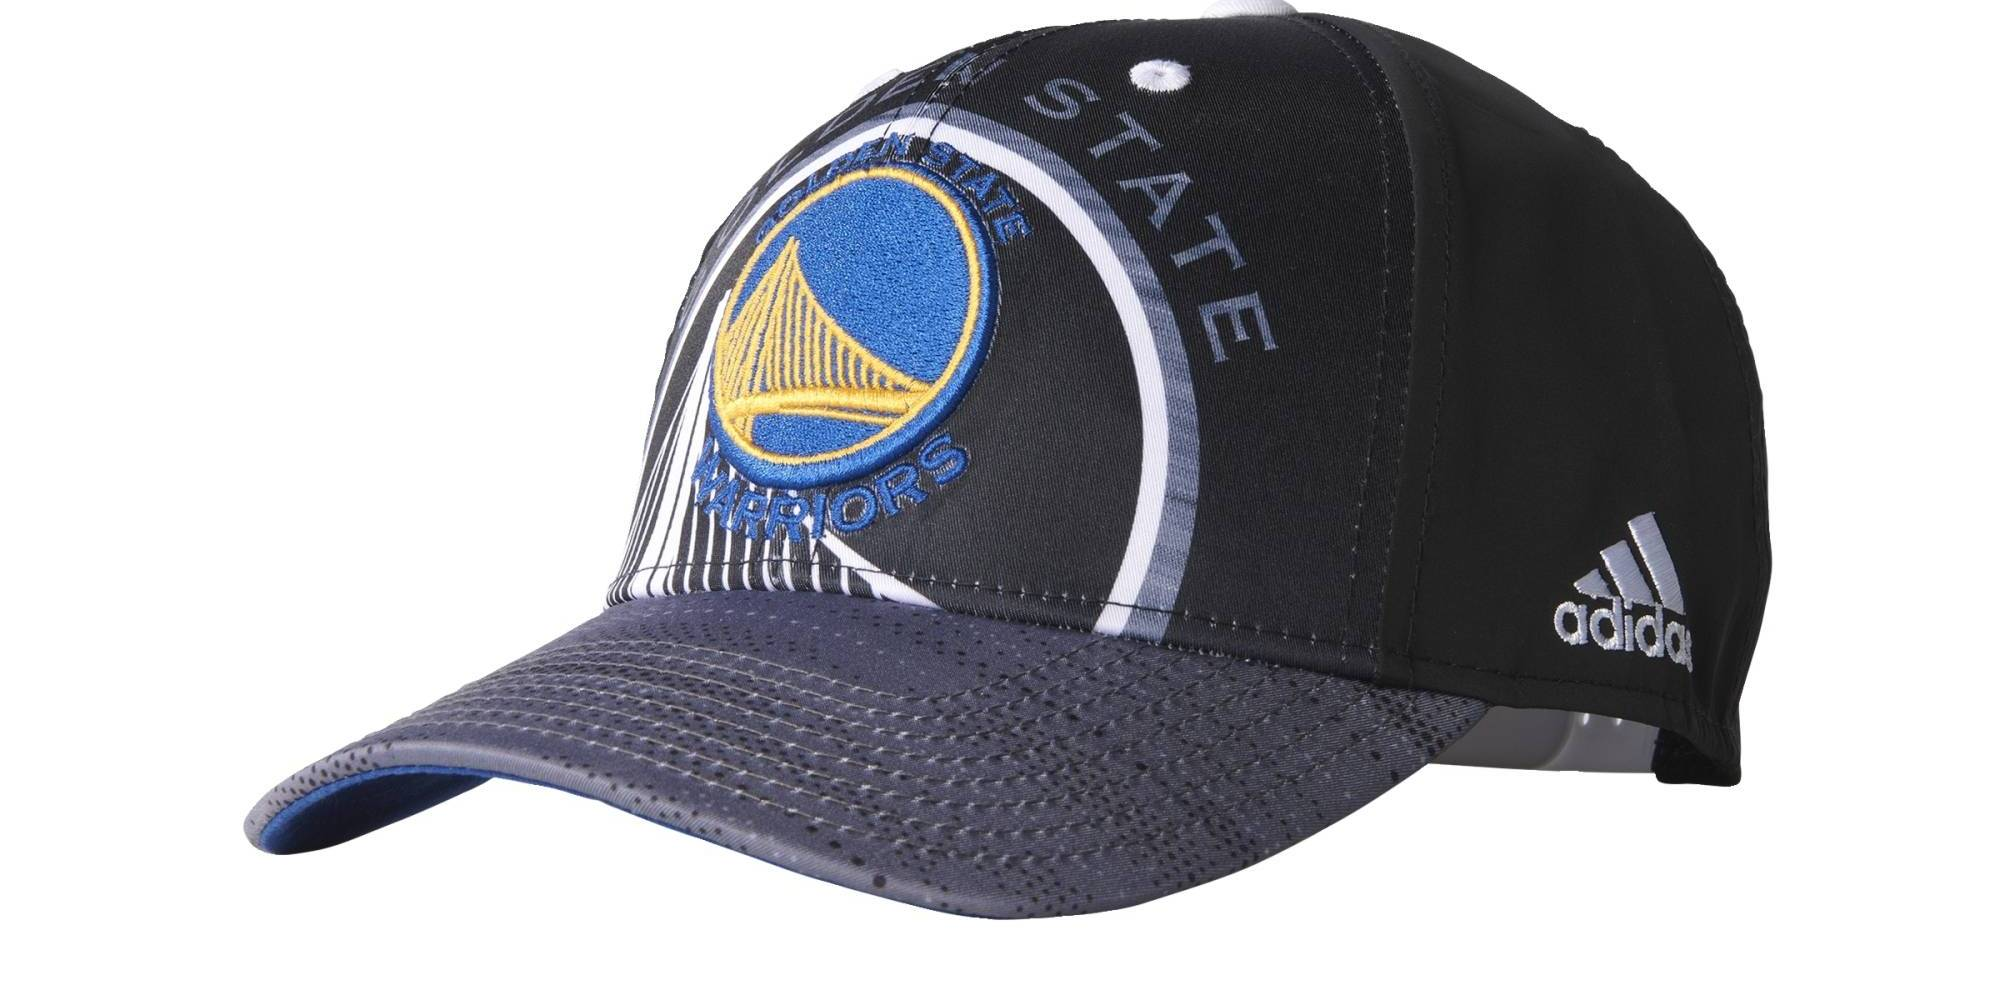 Adidas NBA Golden State Warriors Cap